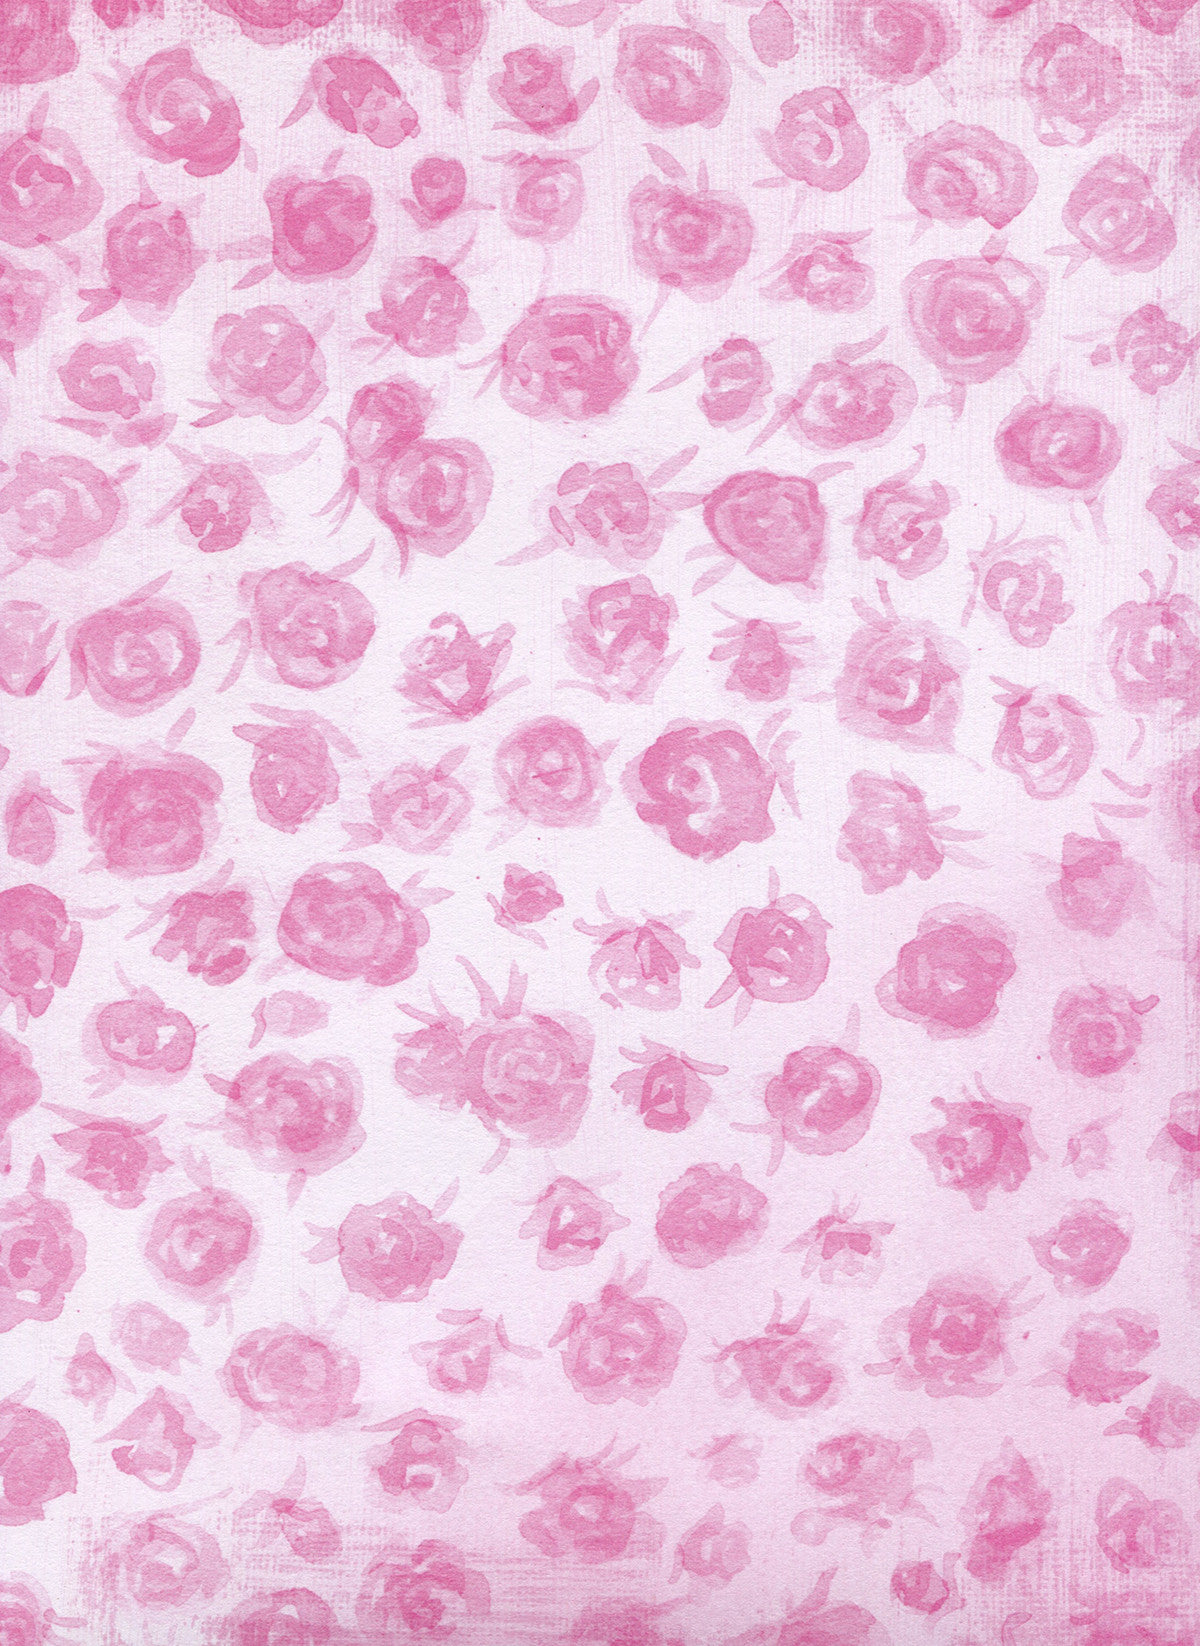 Ring Around the Rosey Photo Backdrop / 9874